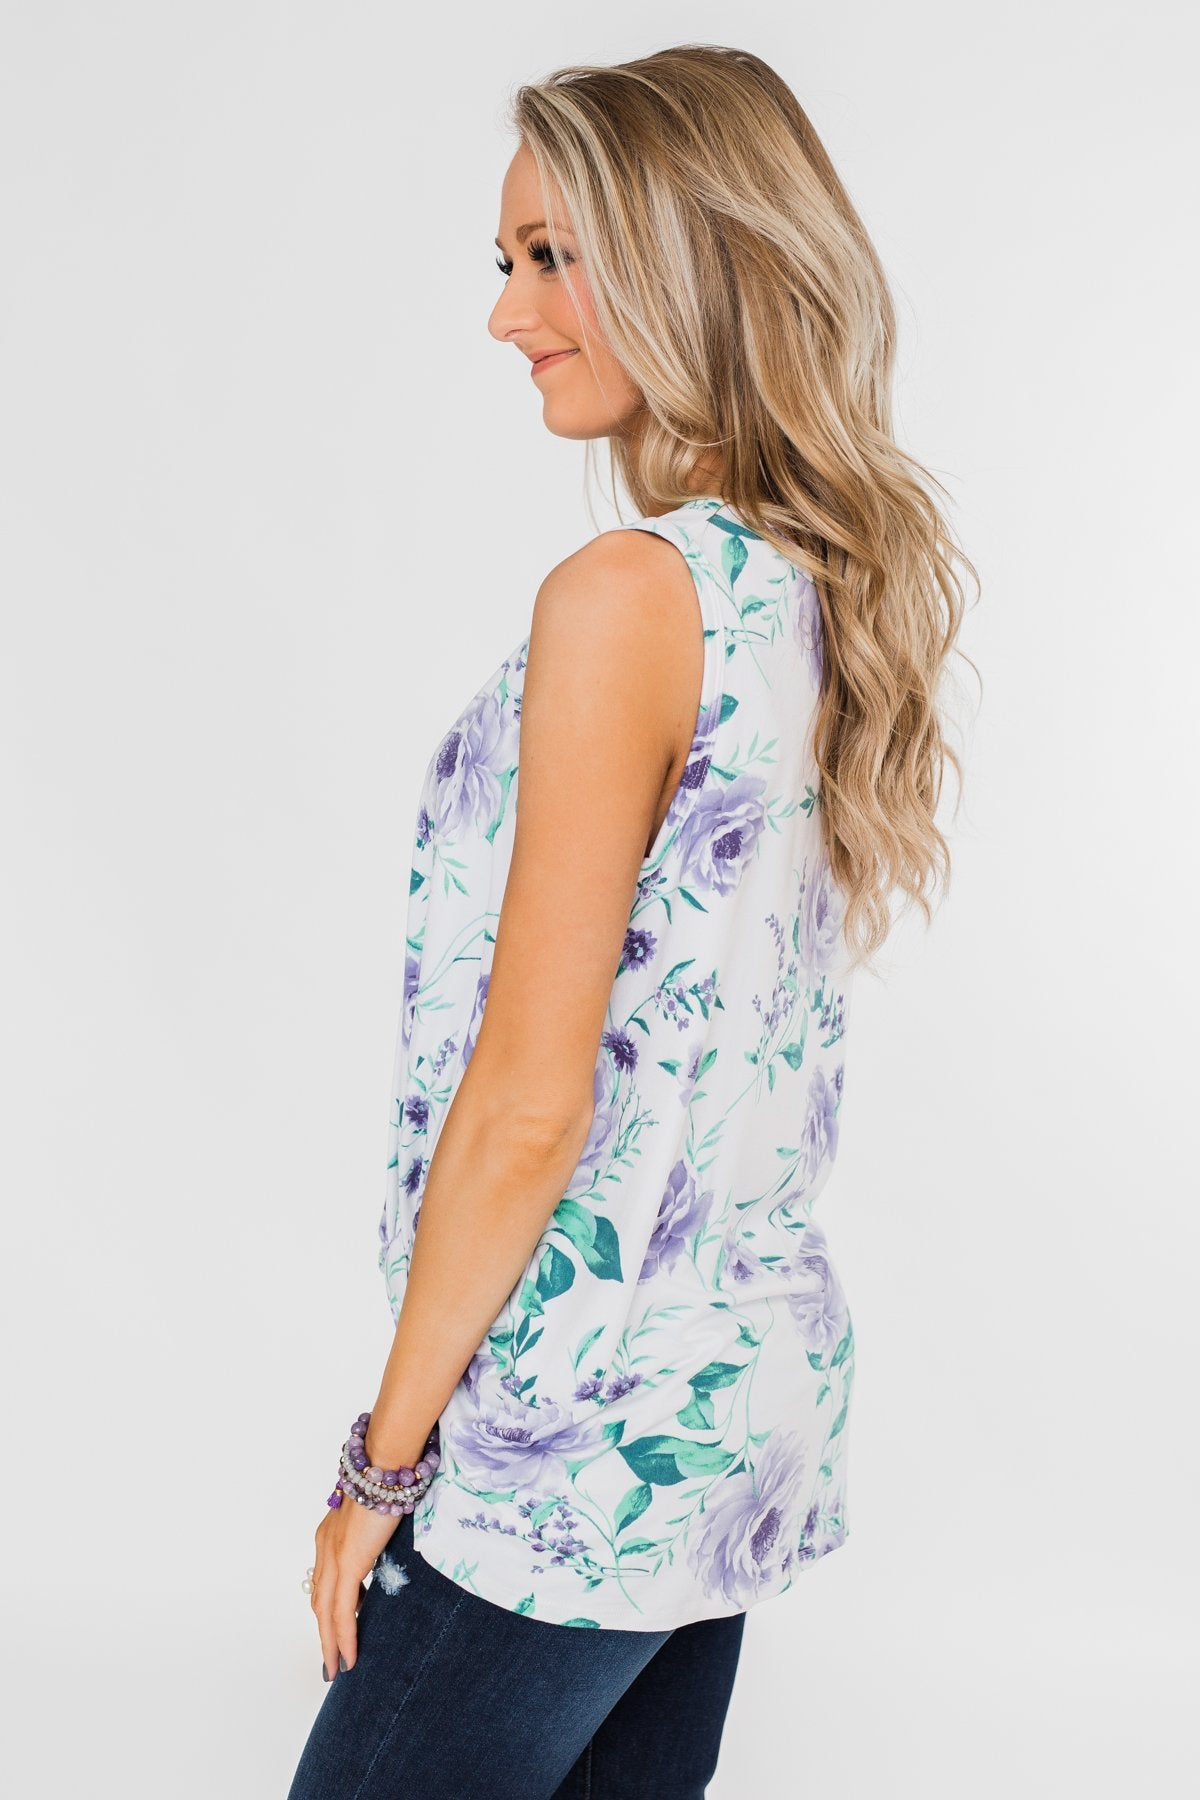 Midnight Expressions Floral Knot Tank Top - Ivory